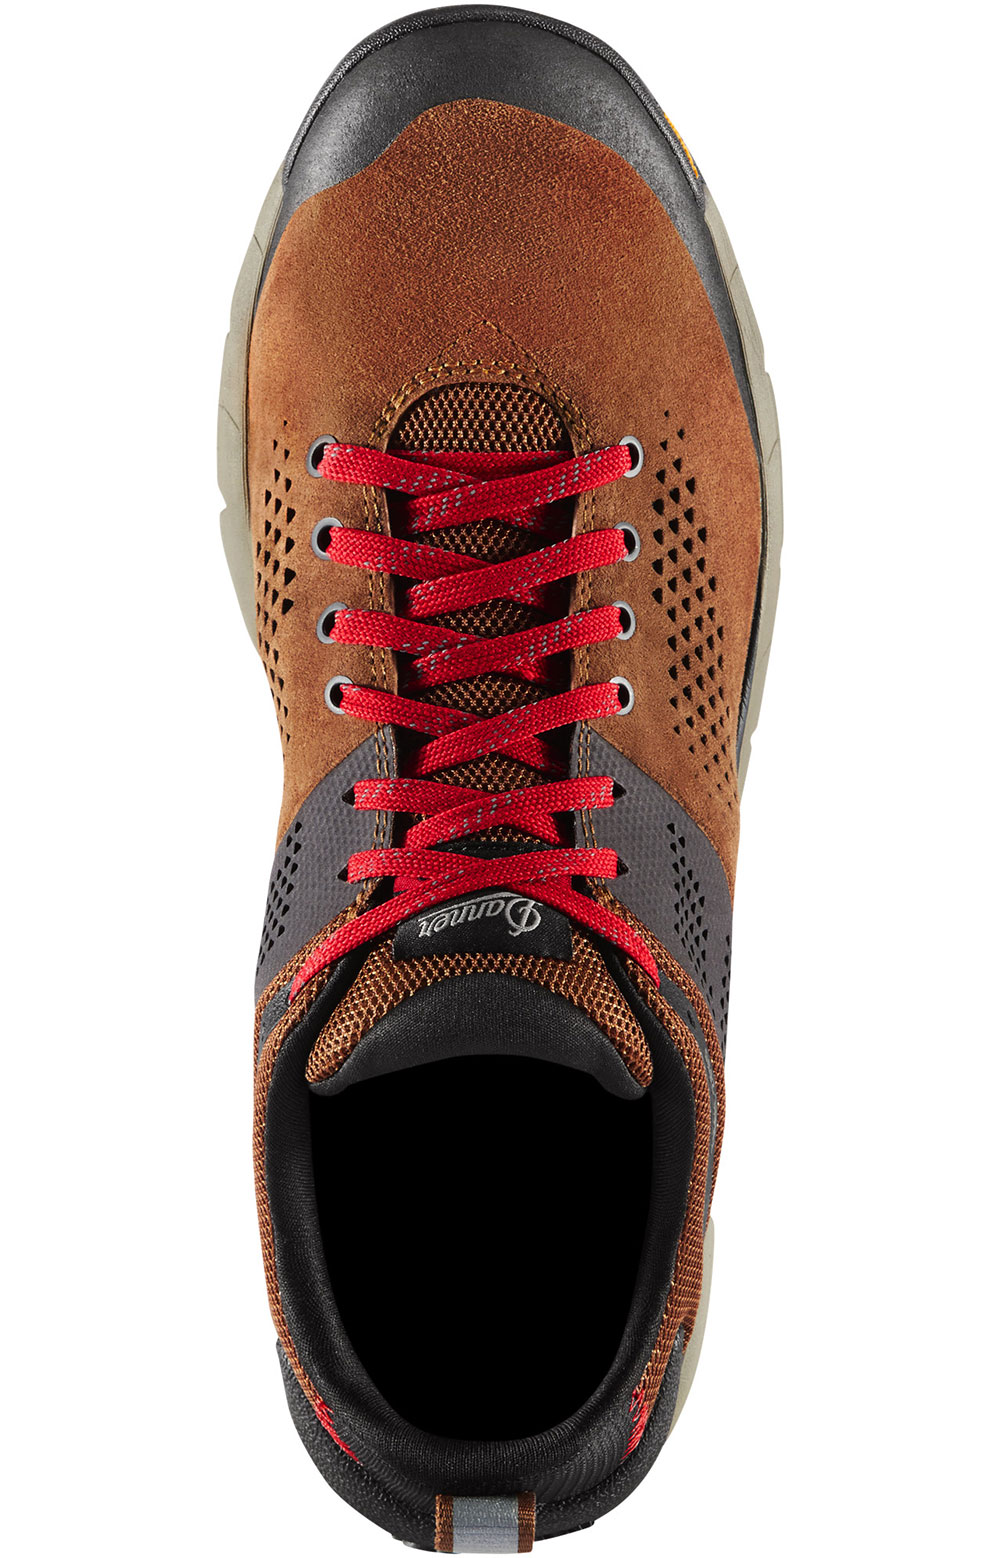 (61272) Trail 2650 Shoes - Brown/Red 5